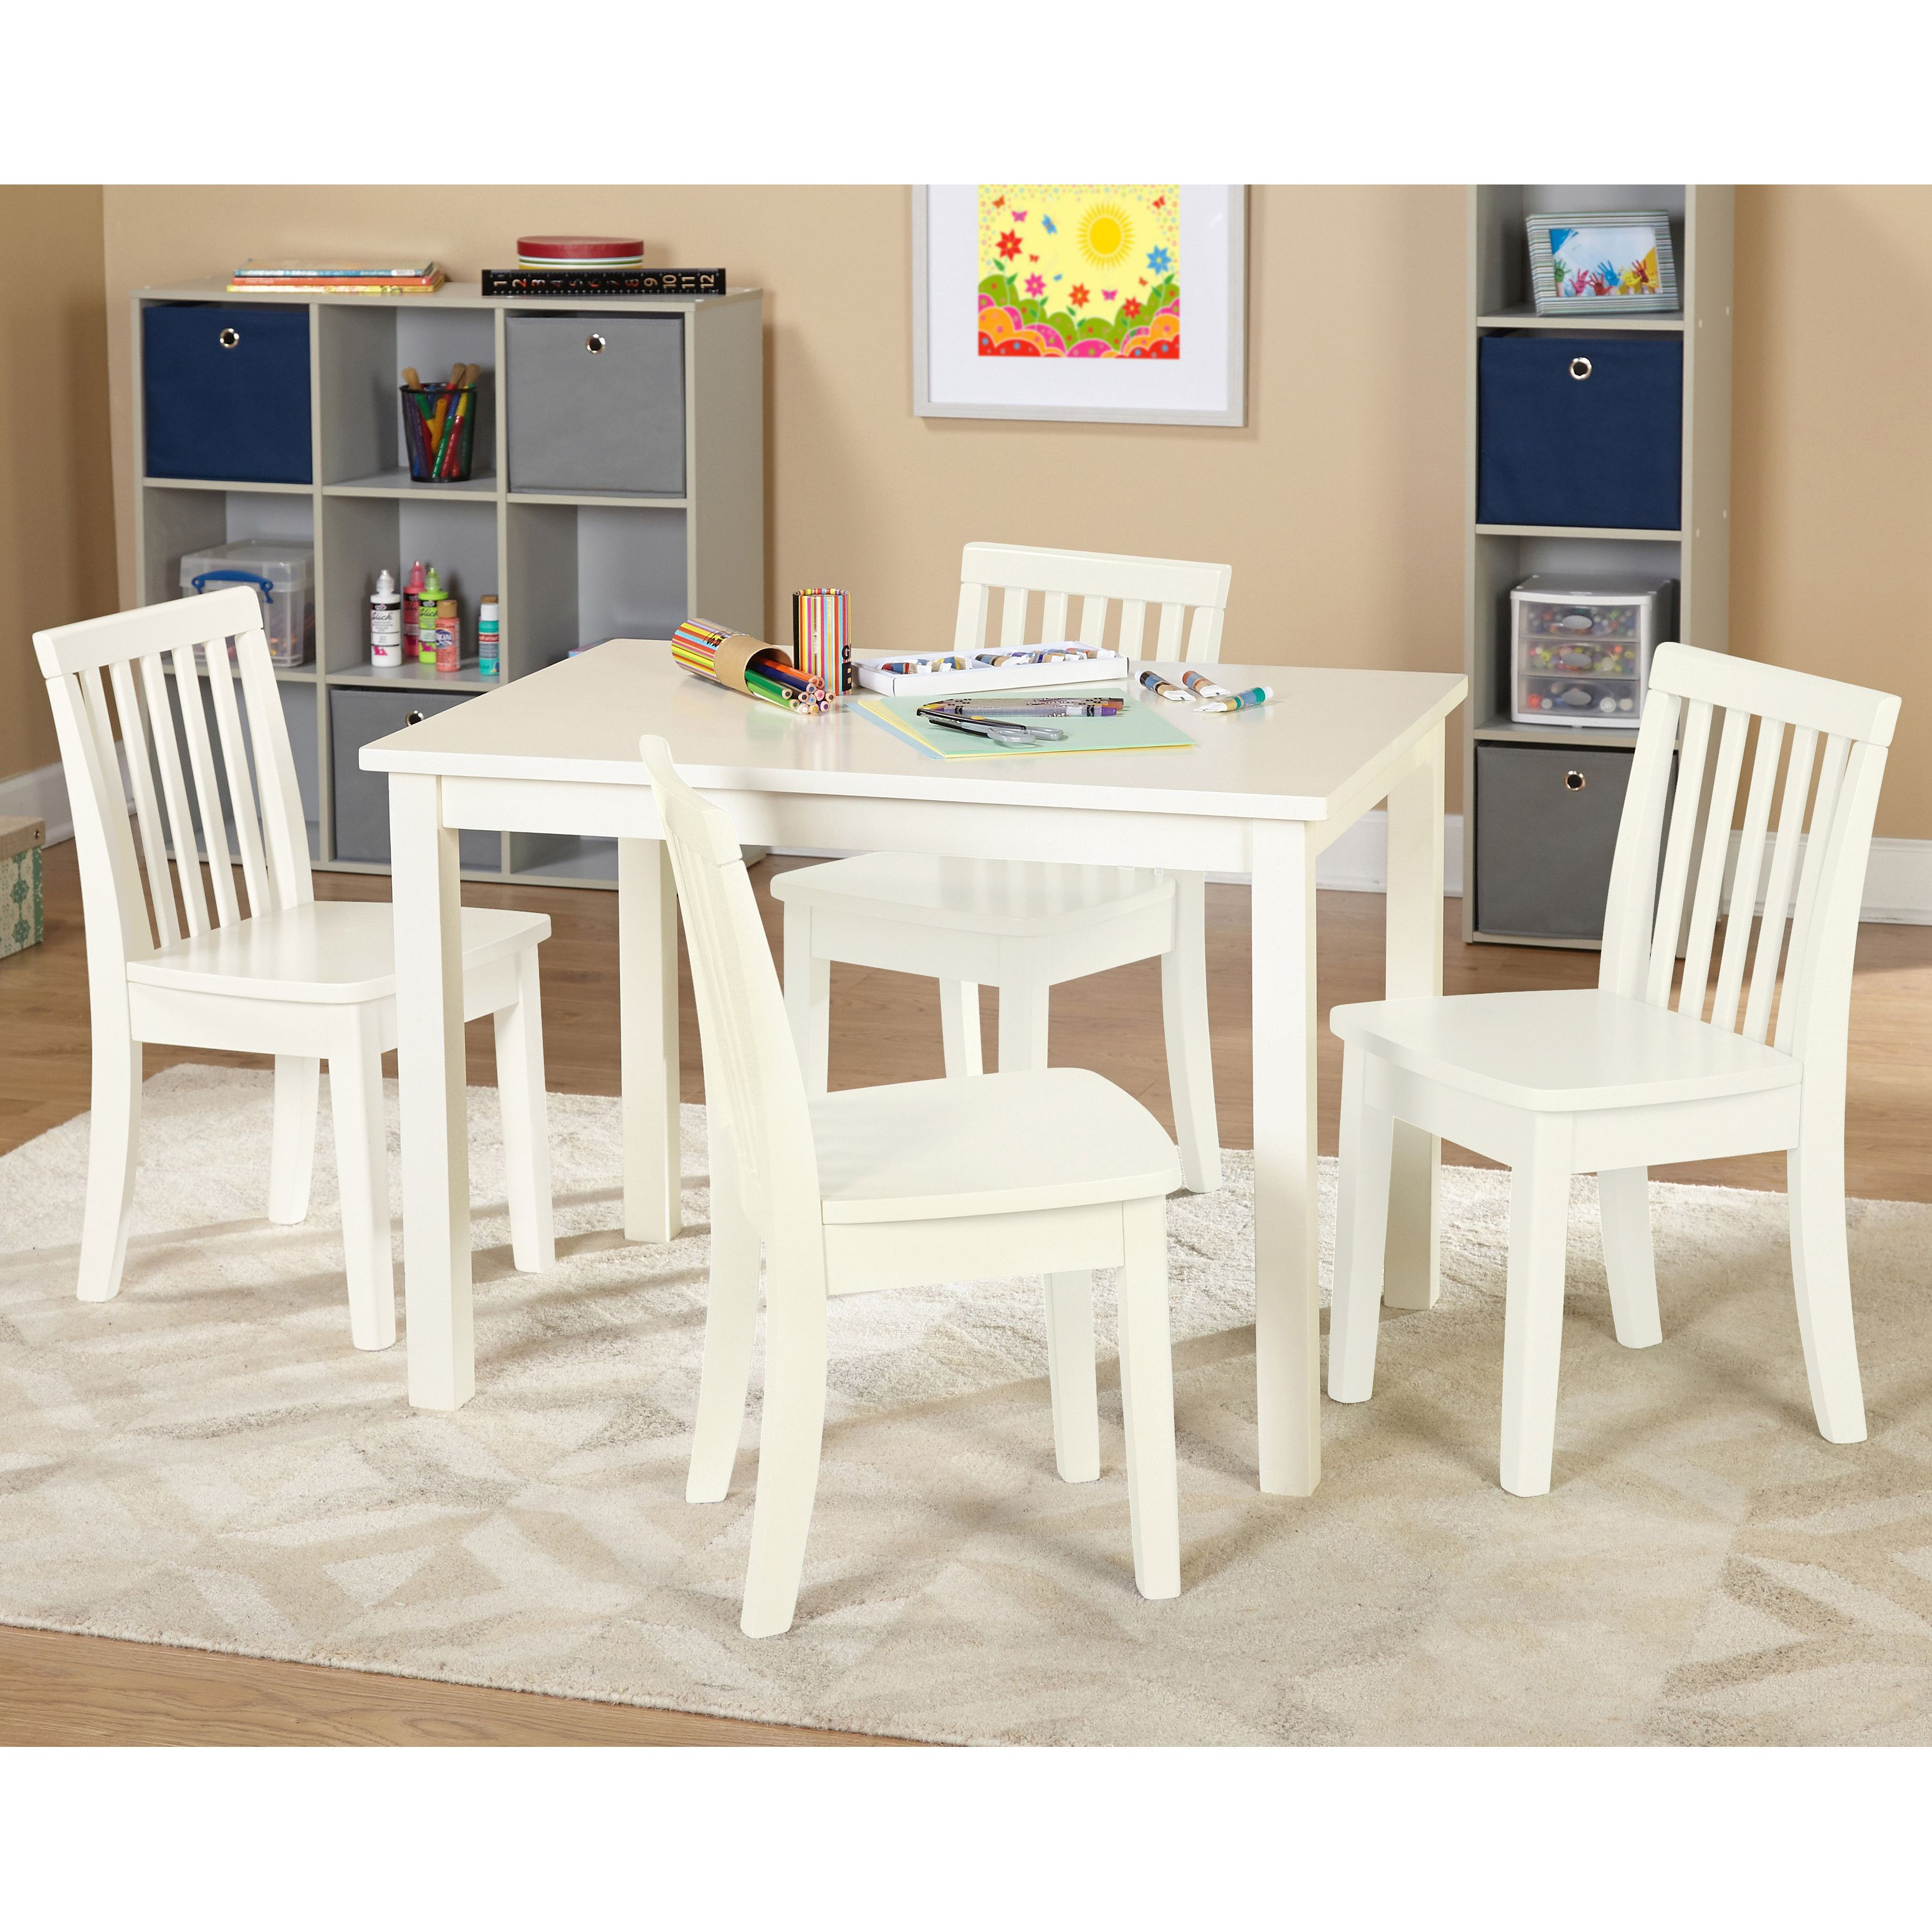 This kid-sized table and chairs set features a cream table with your ...